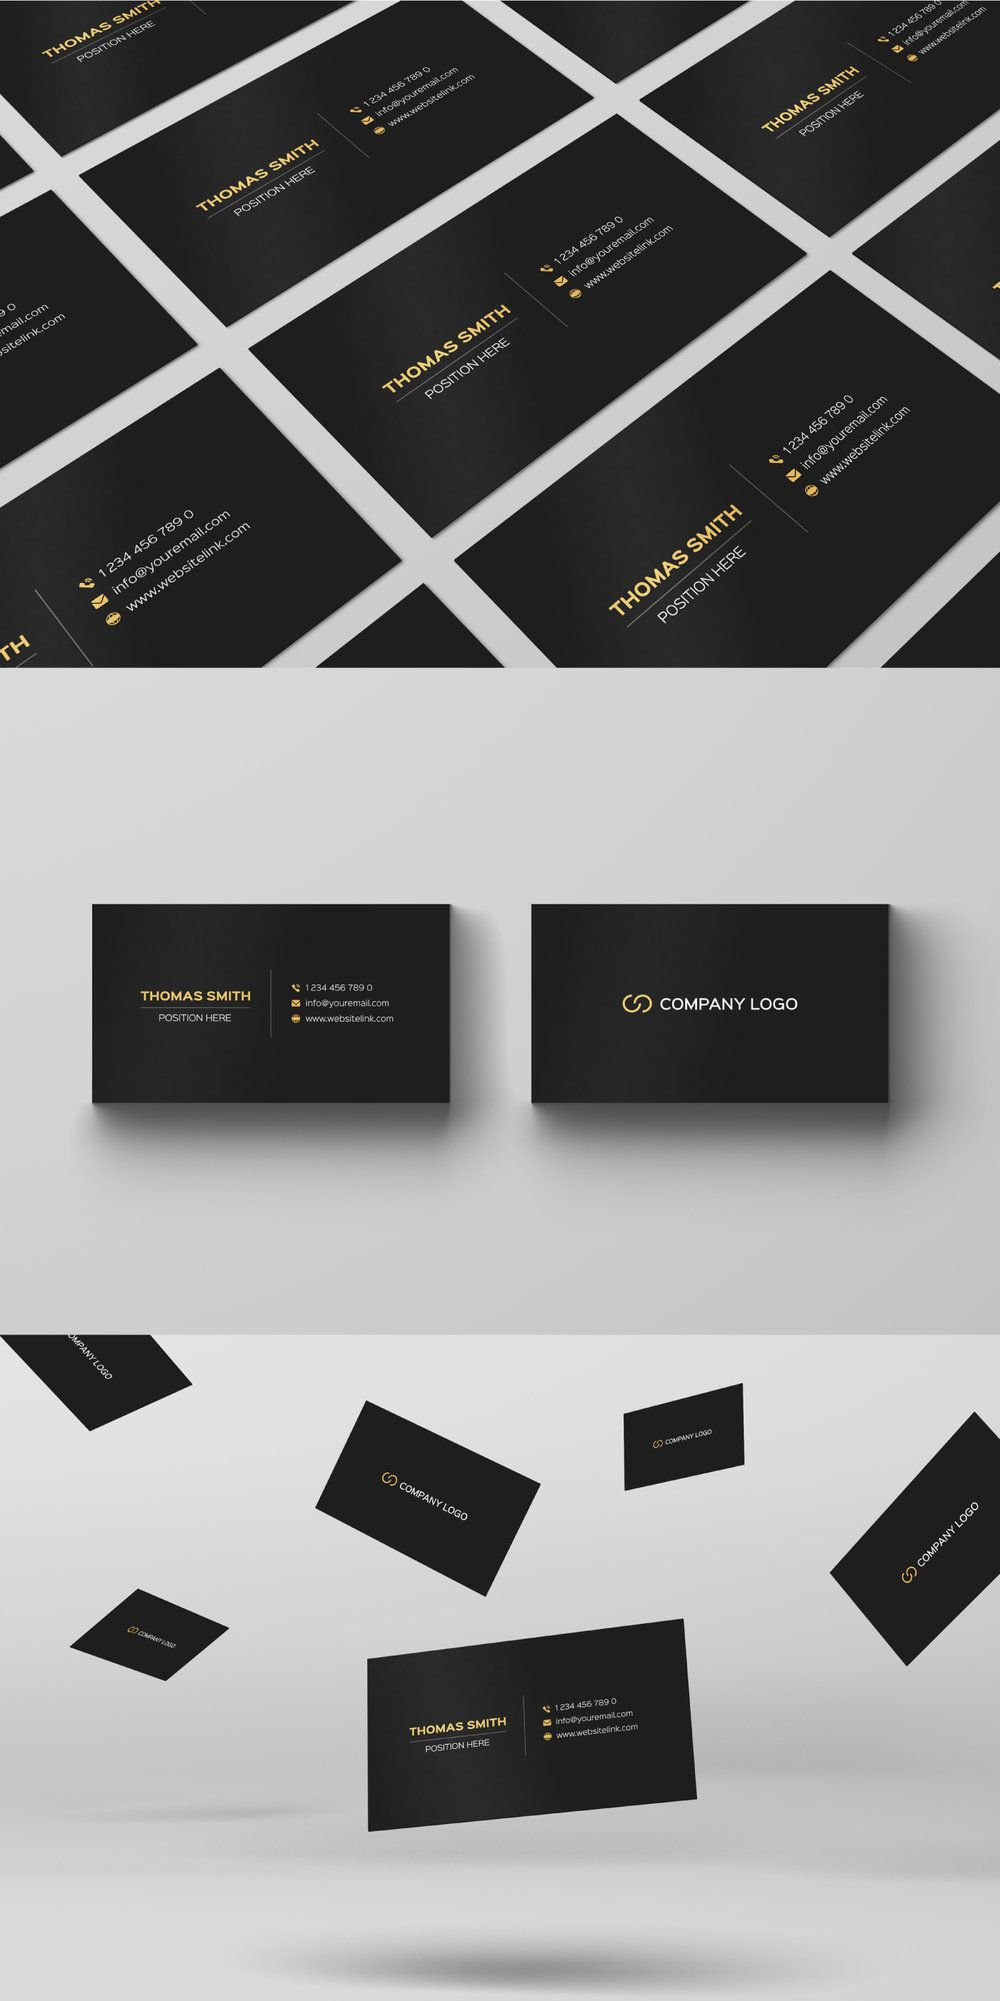 Free Minimalistic Black Gold Business Card Template Pixel Surplus Resources For Creators Gold Business Card Photography Business Cards Template Vintage Business Cards Template